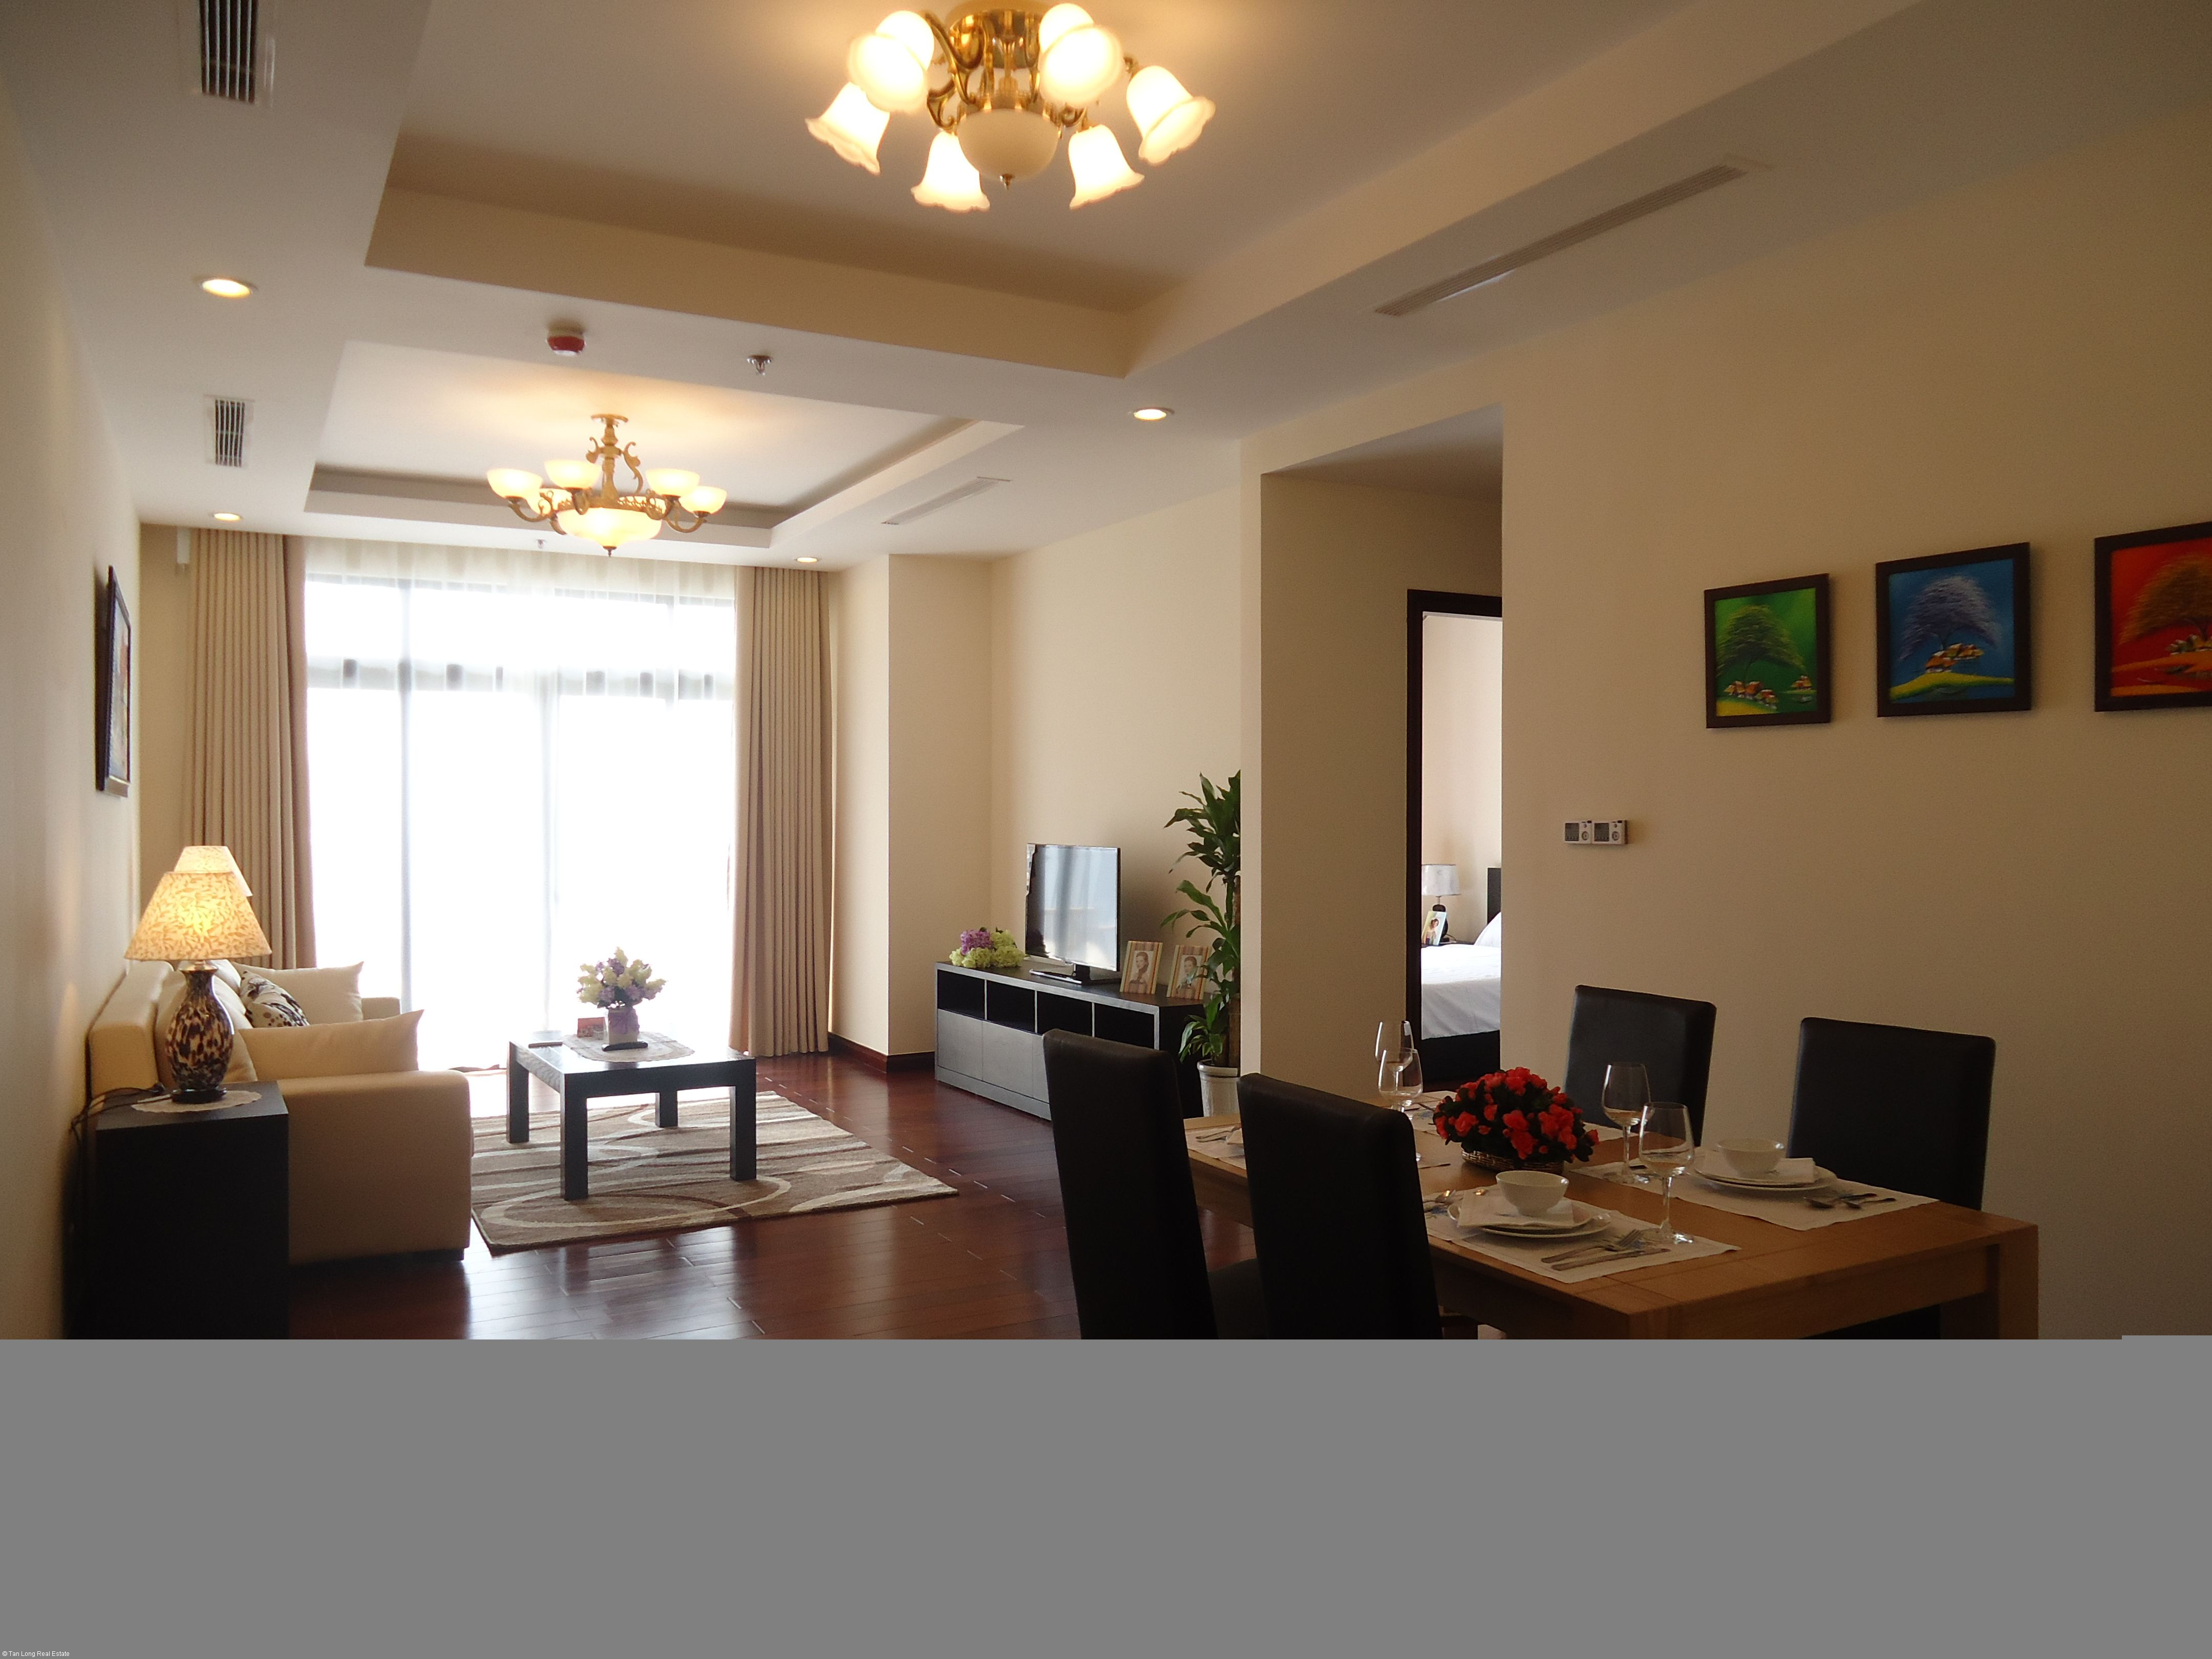 Renting 03 beautiful bedroom apartment in N05-Trung Hoa,Nhan Chinh,Hoang dao Thuy, Ha Noi 5